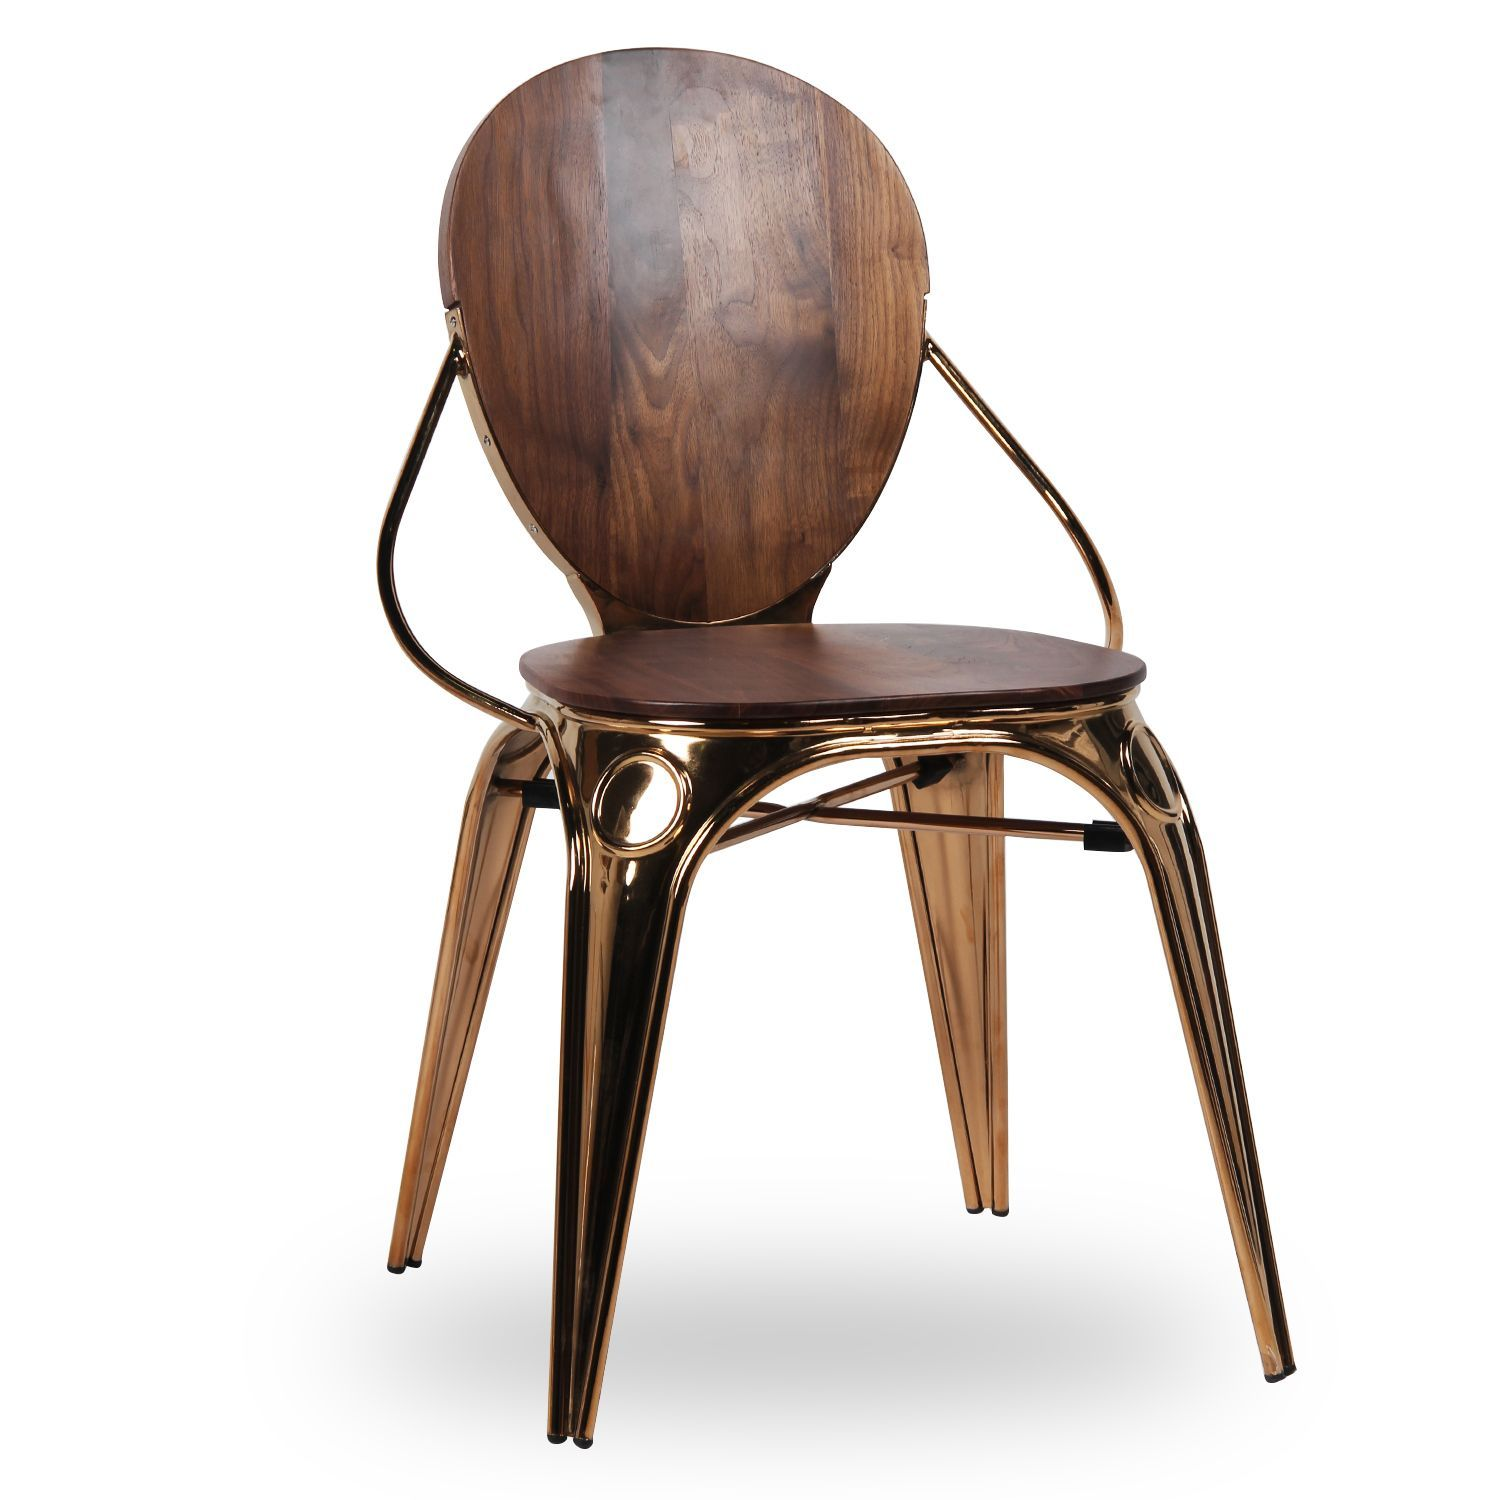 Wooden chairs design classics - Silla Ovei Metal Wood Sillas Met Licas Louix Chair Sillas De